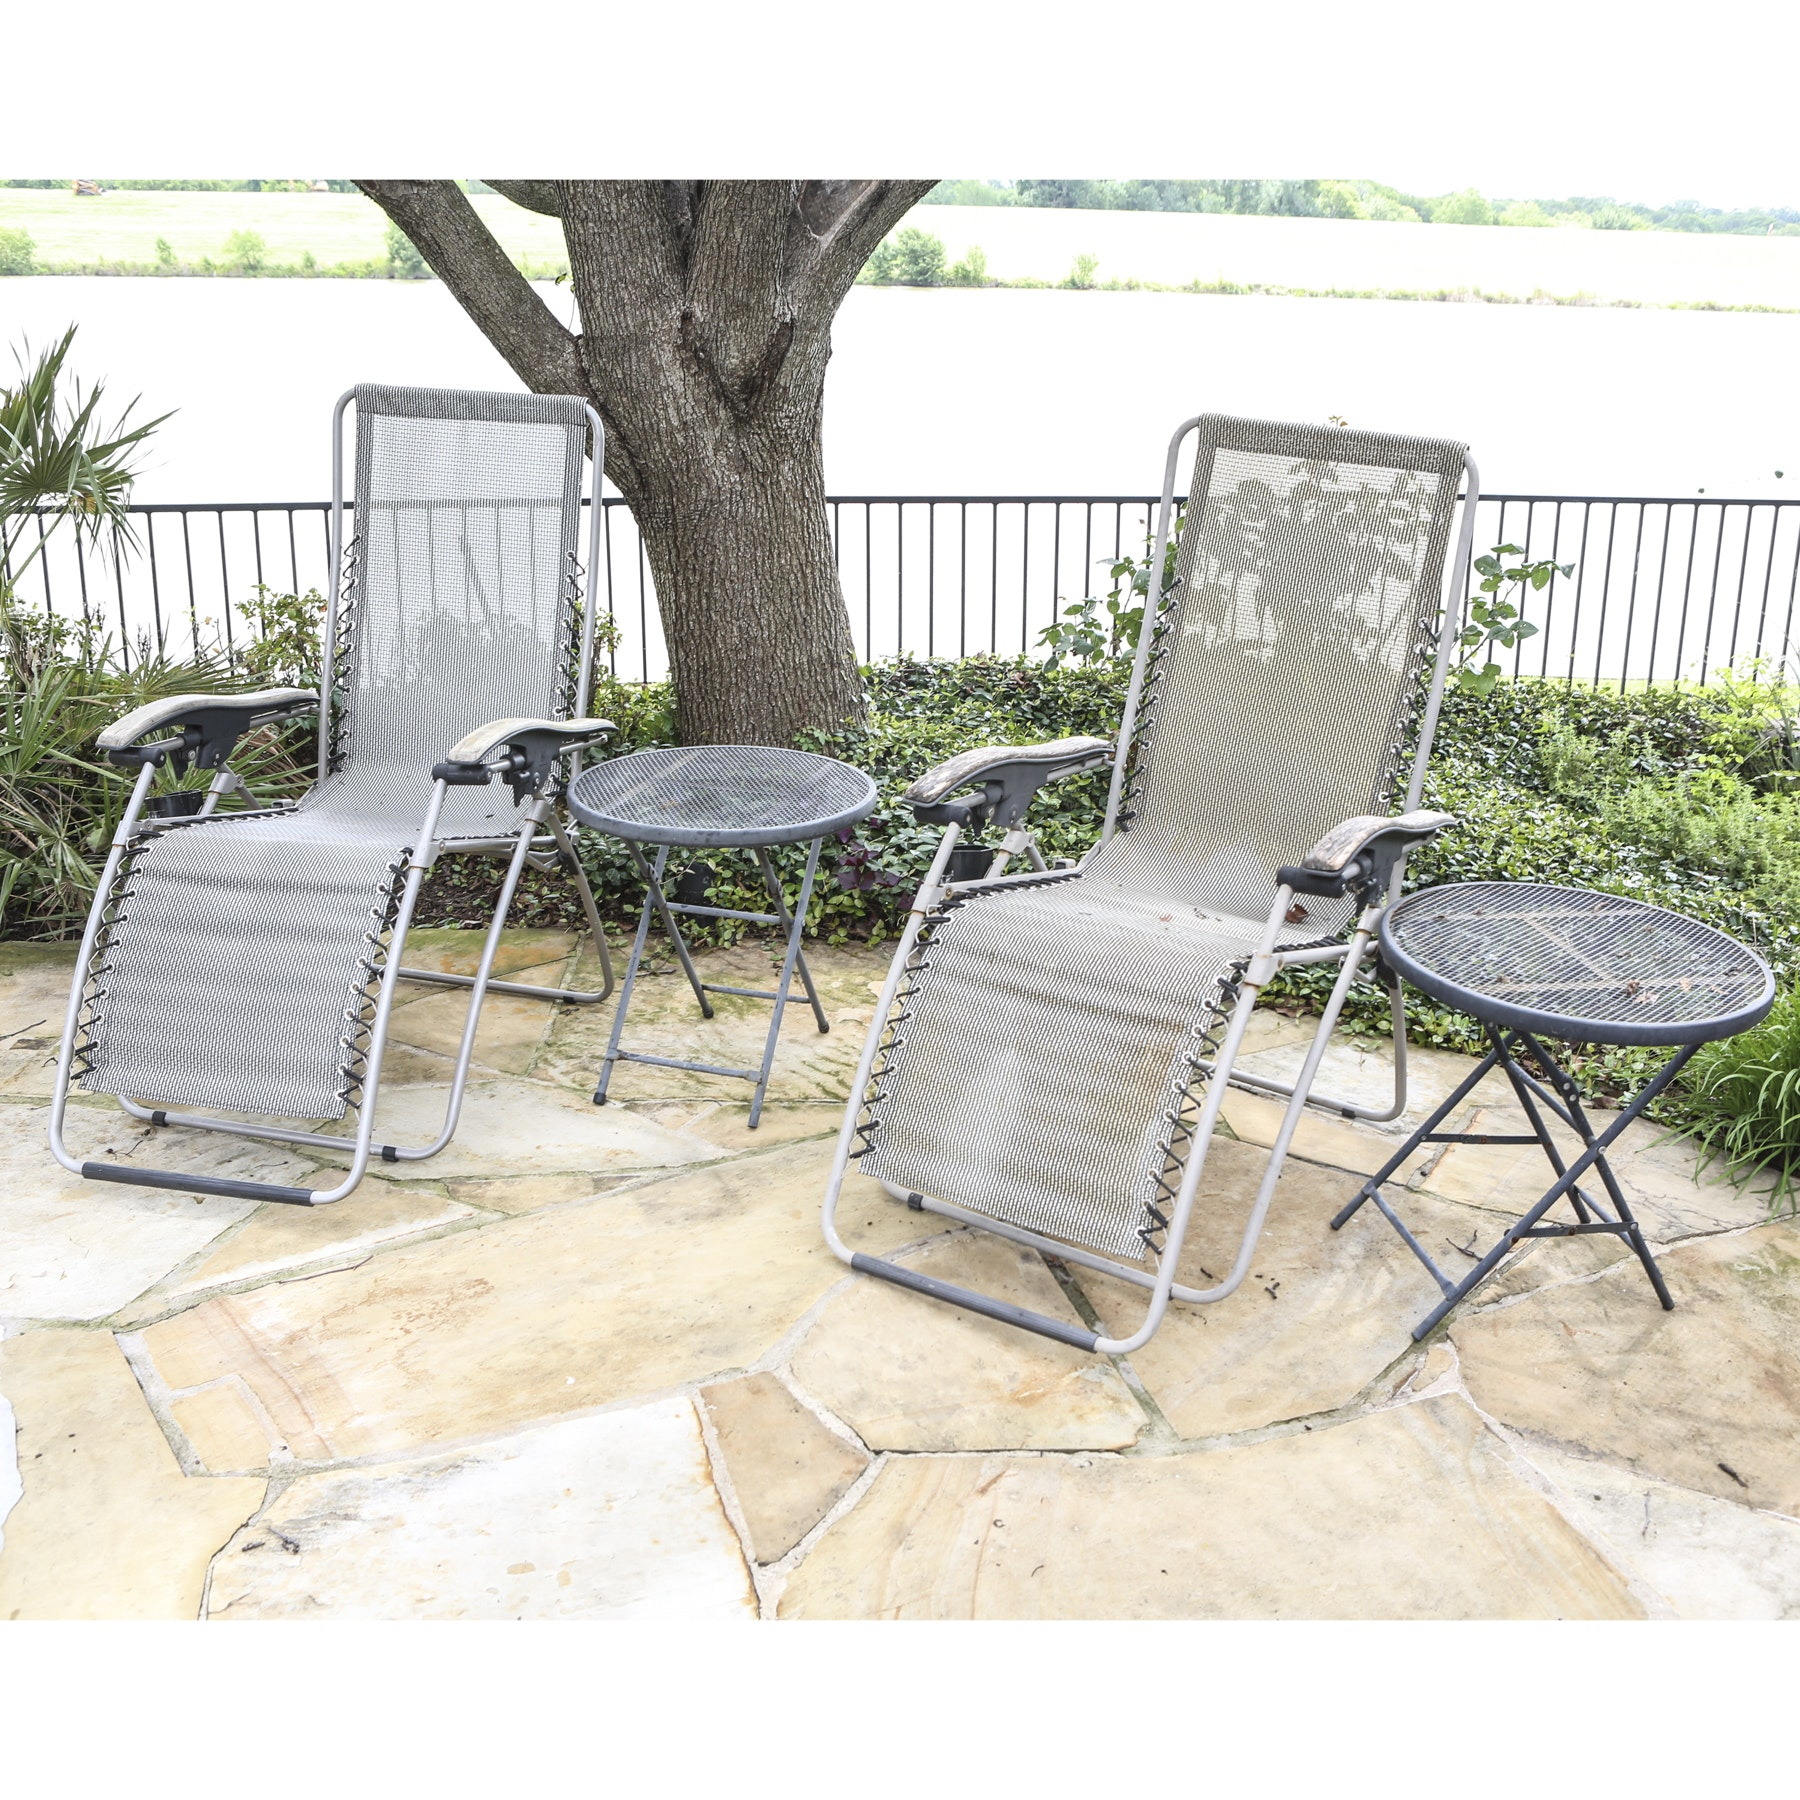 Pair of Patio Chaise Lounge Chairs with Two Side Tables